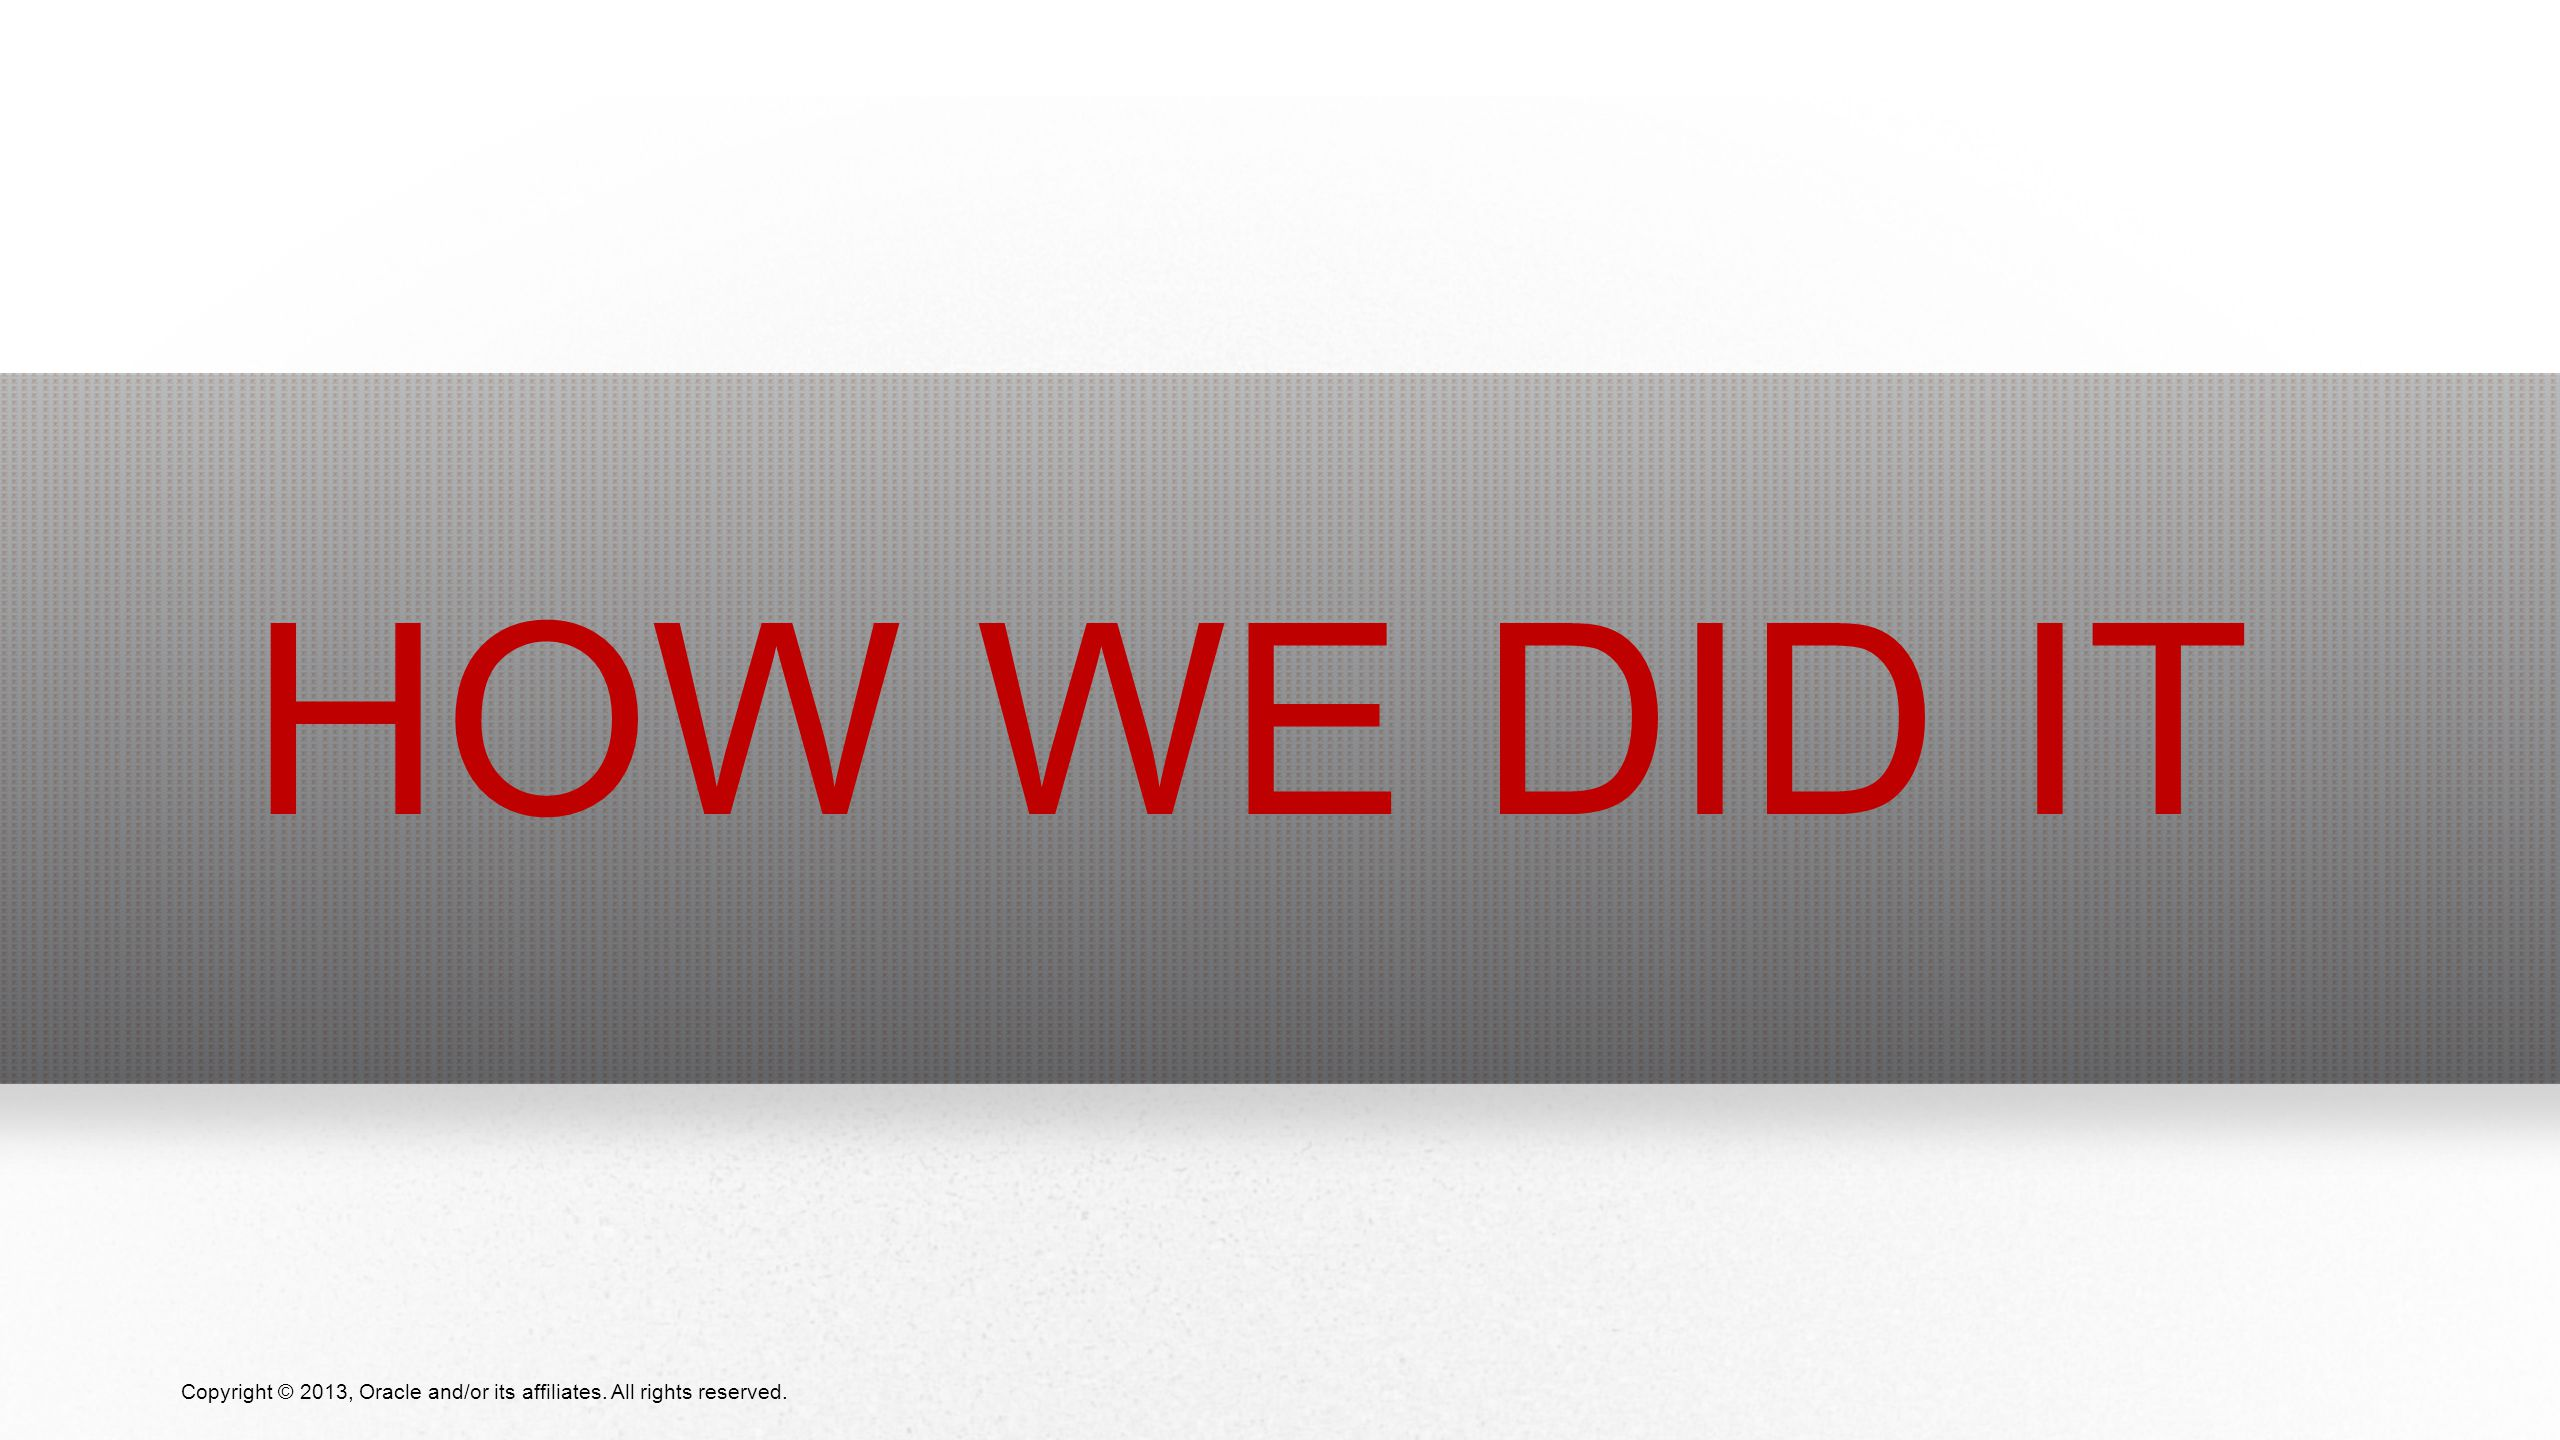 4 Copyright © 2013, Oracle and/or its affiliates. All rights reserved. HOW WE DID IT